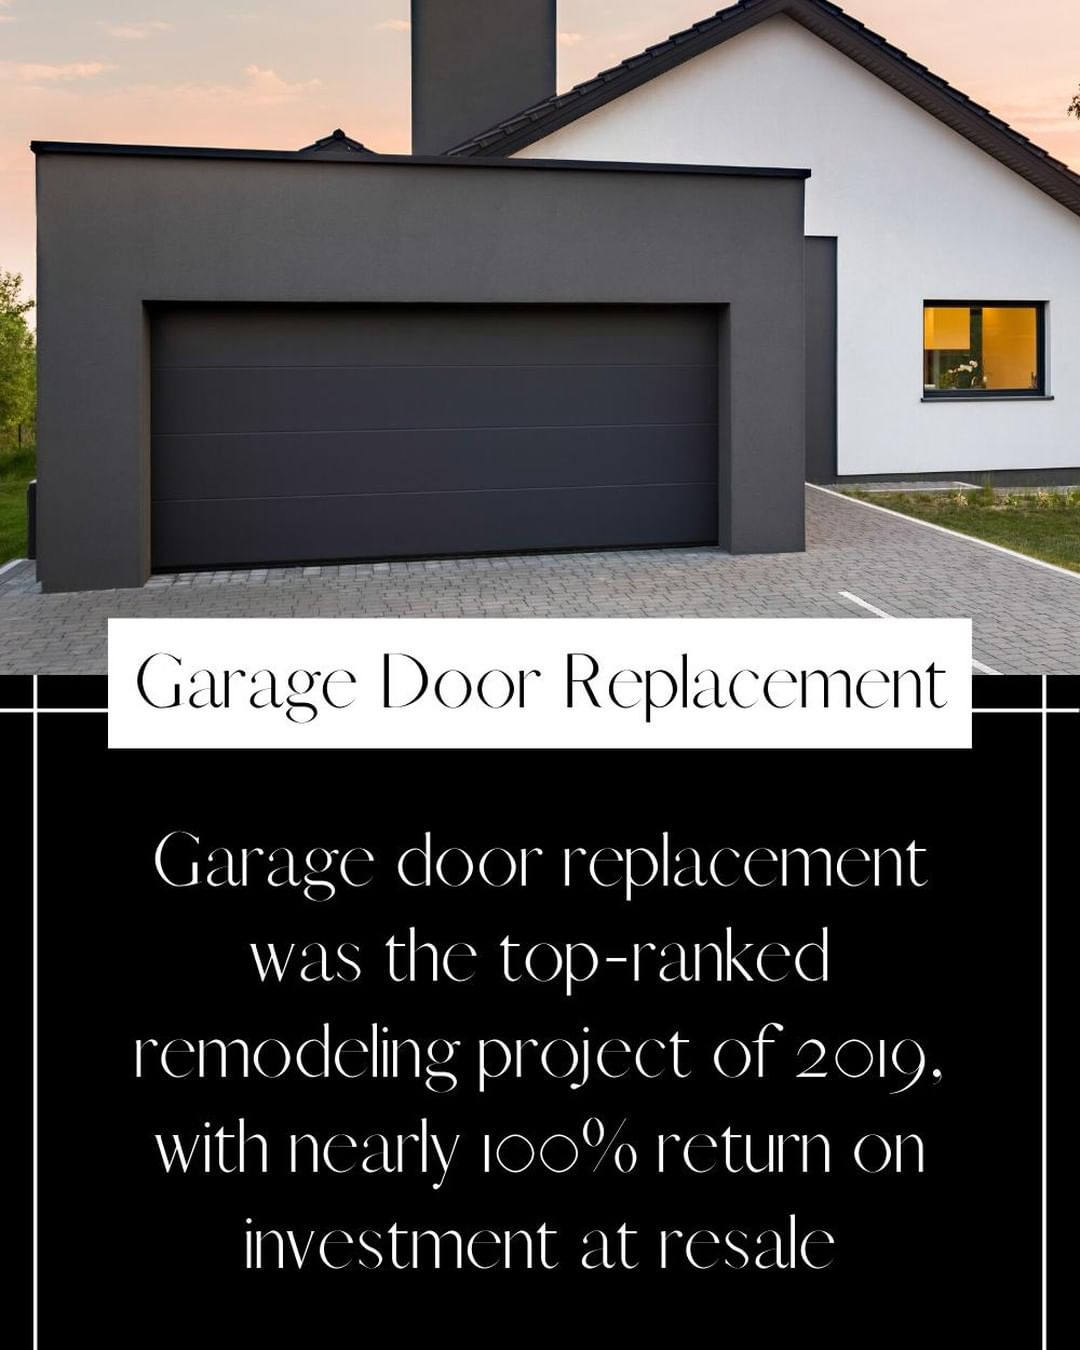 The top-ranked remodel of 2019 was replacing the garage door – which gives nearly a 100% return on investment!⁣ ⁣ For more ideas on ways to update your home, give us a call.⁣ ⁣ *source: Remodeling Cost vs. Value Report 2019⁣ ⁣ 𝐍𝐞𝐰 𝐇𝐨𝐫𝐢𝐳𝐨𝐧𝐬 𝐃𝐞𝐯𝐞𝐥𝐨𝐩𝐦𝐞𝐧𝐭, 𝐈𝐧𝐜.⁣ 𝟗𝟕𝟎-𝟗𝟖𝟓-𝟗𝟒𝟑𝟐 |  𝐈𝐧𝐟𝐨@𝐍𝐇𝐃𝐈𝐆𝐉.𝐜𝐨𝐦⁣ ⁣ #Realtor #HouseExpert #home #reno #renovations #investment #RealEstateAgent #themoreyouknow #agent #weekendtips #remodeling #garagedoor #garage #ROI #realestate